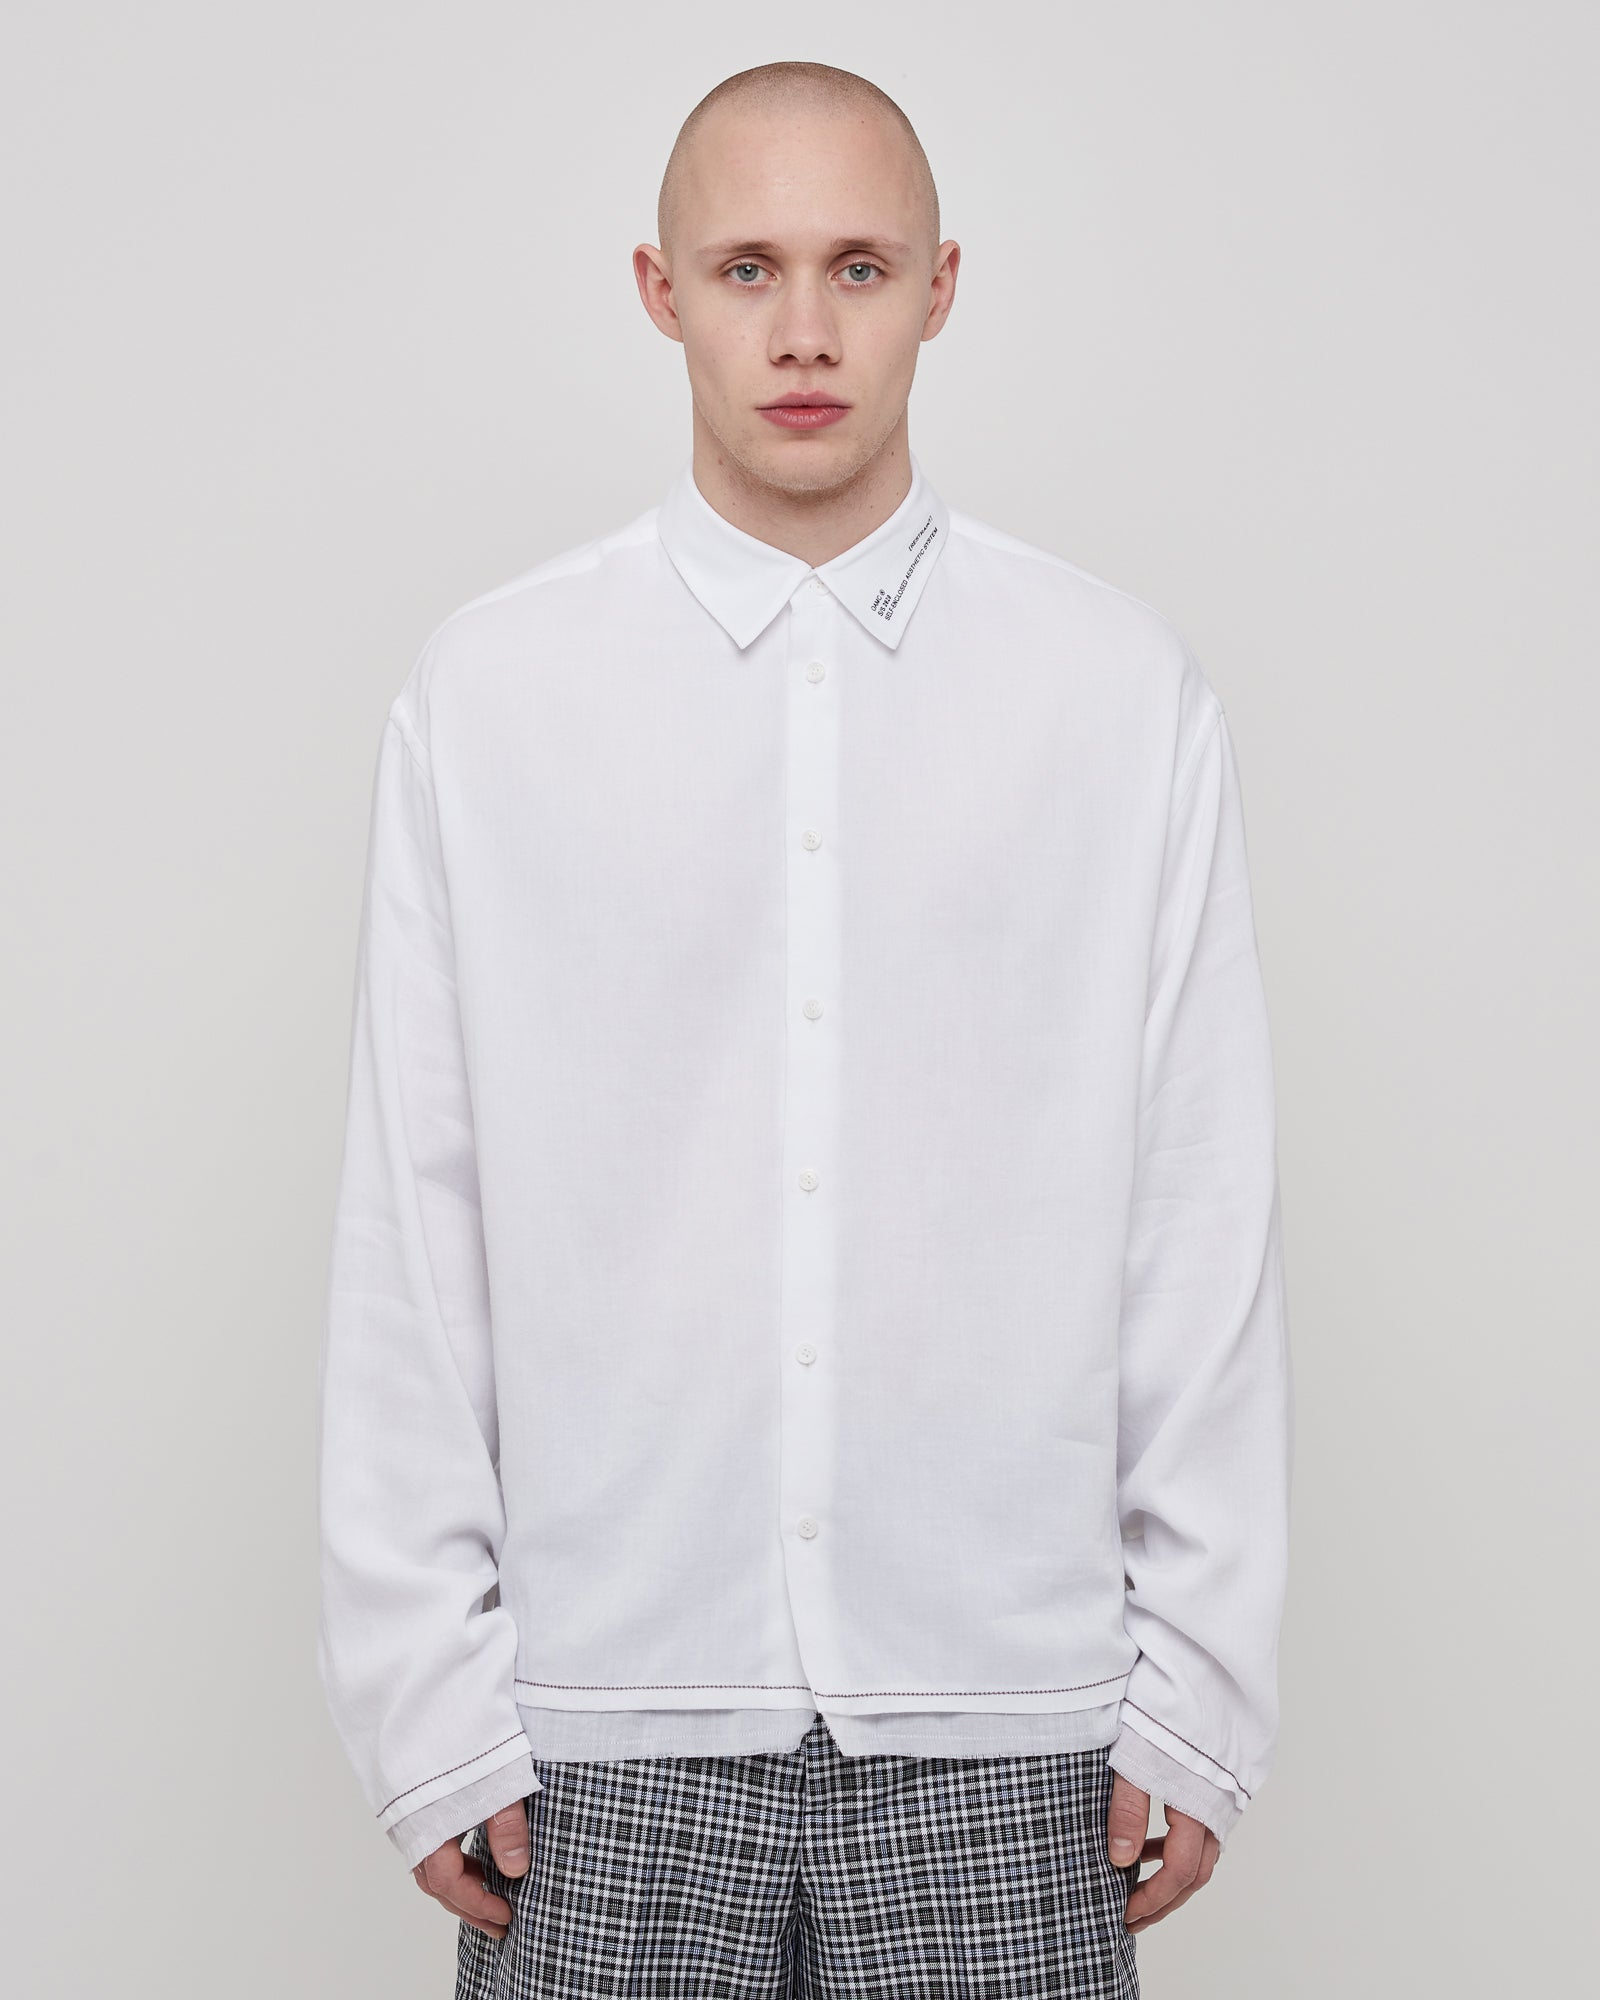 Haze Shirt in Off White